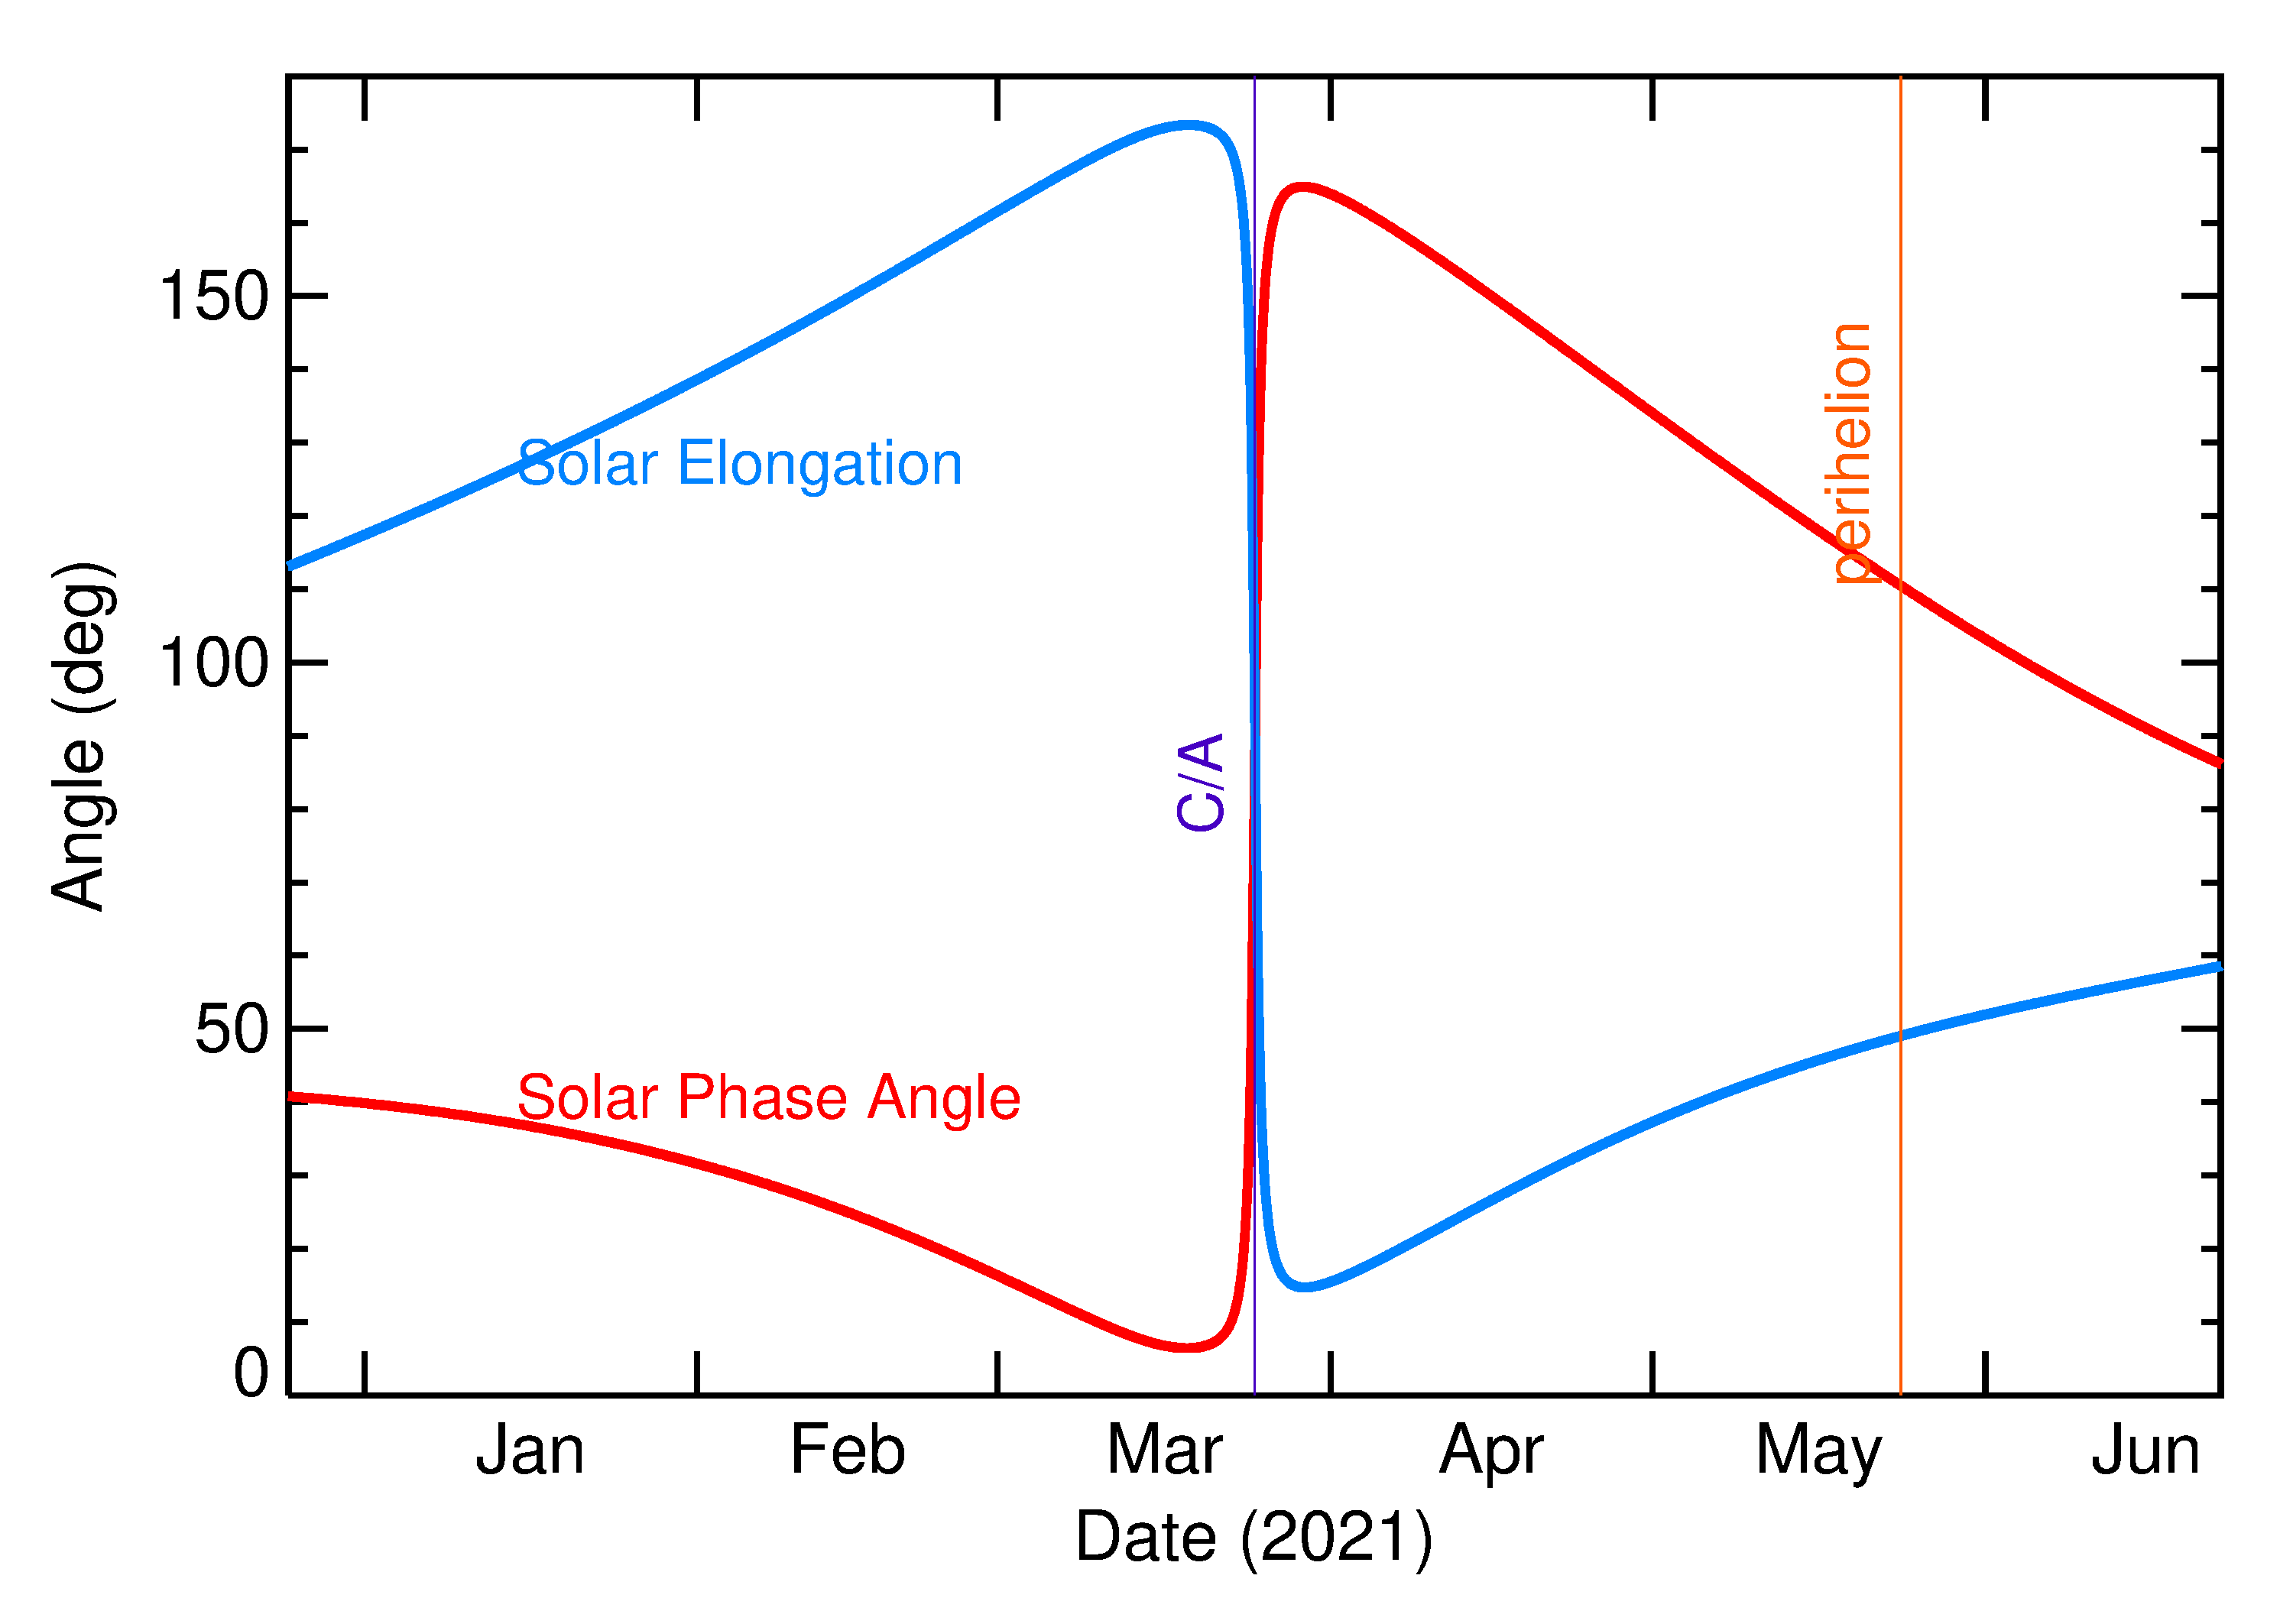 Solar Elongation and Solar Phase Angle of 2021 FP2 in the months around closest approach